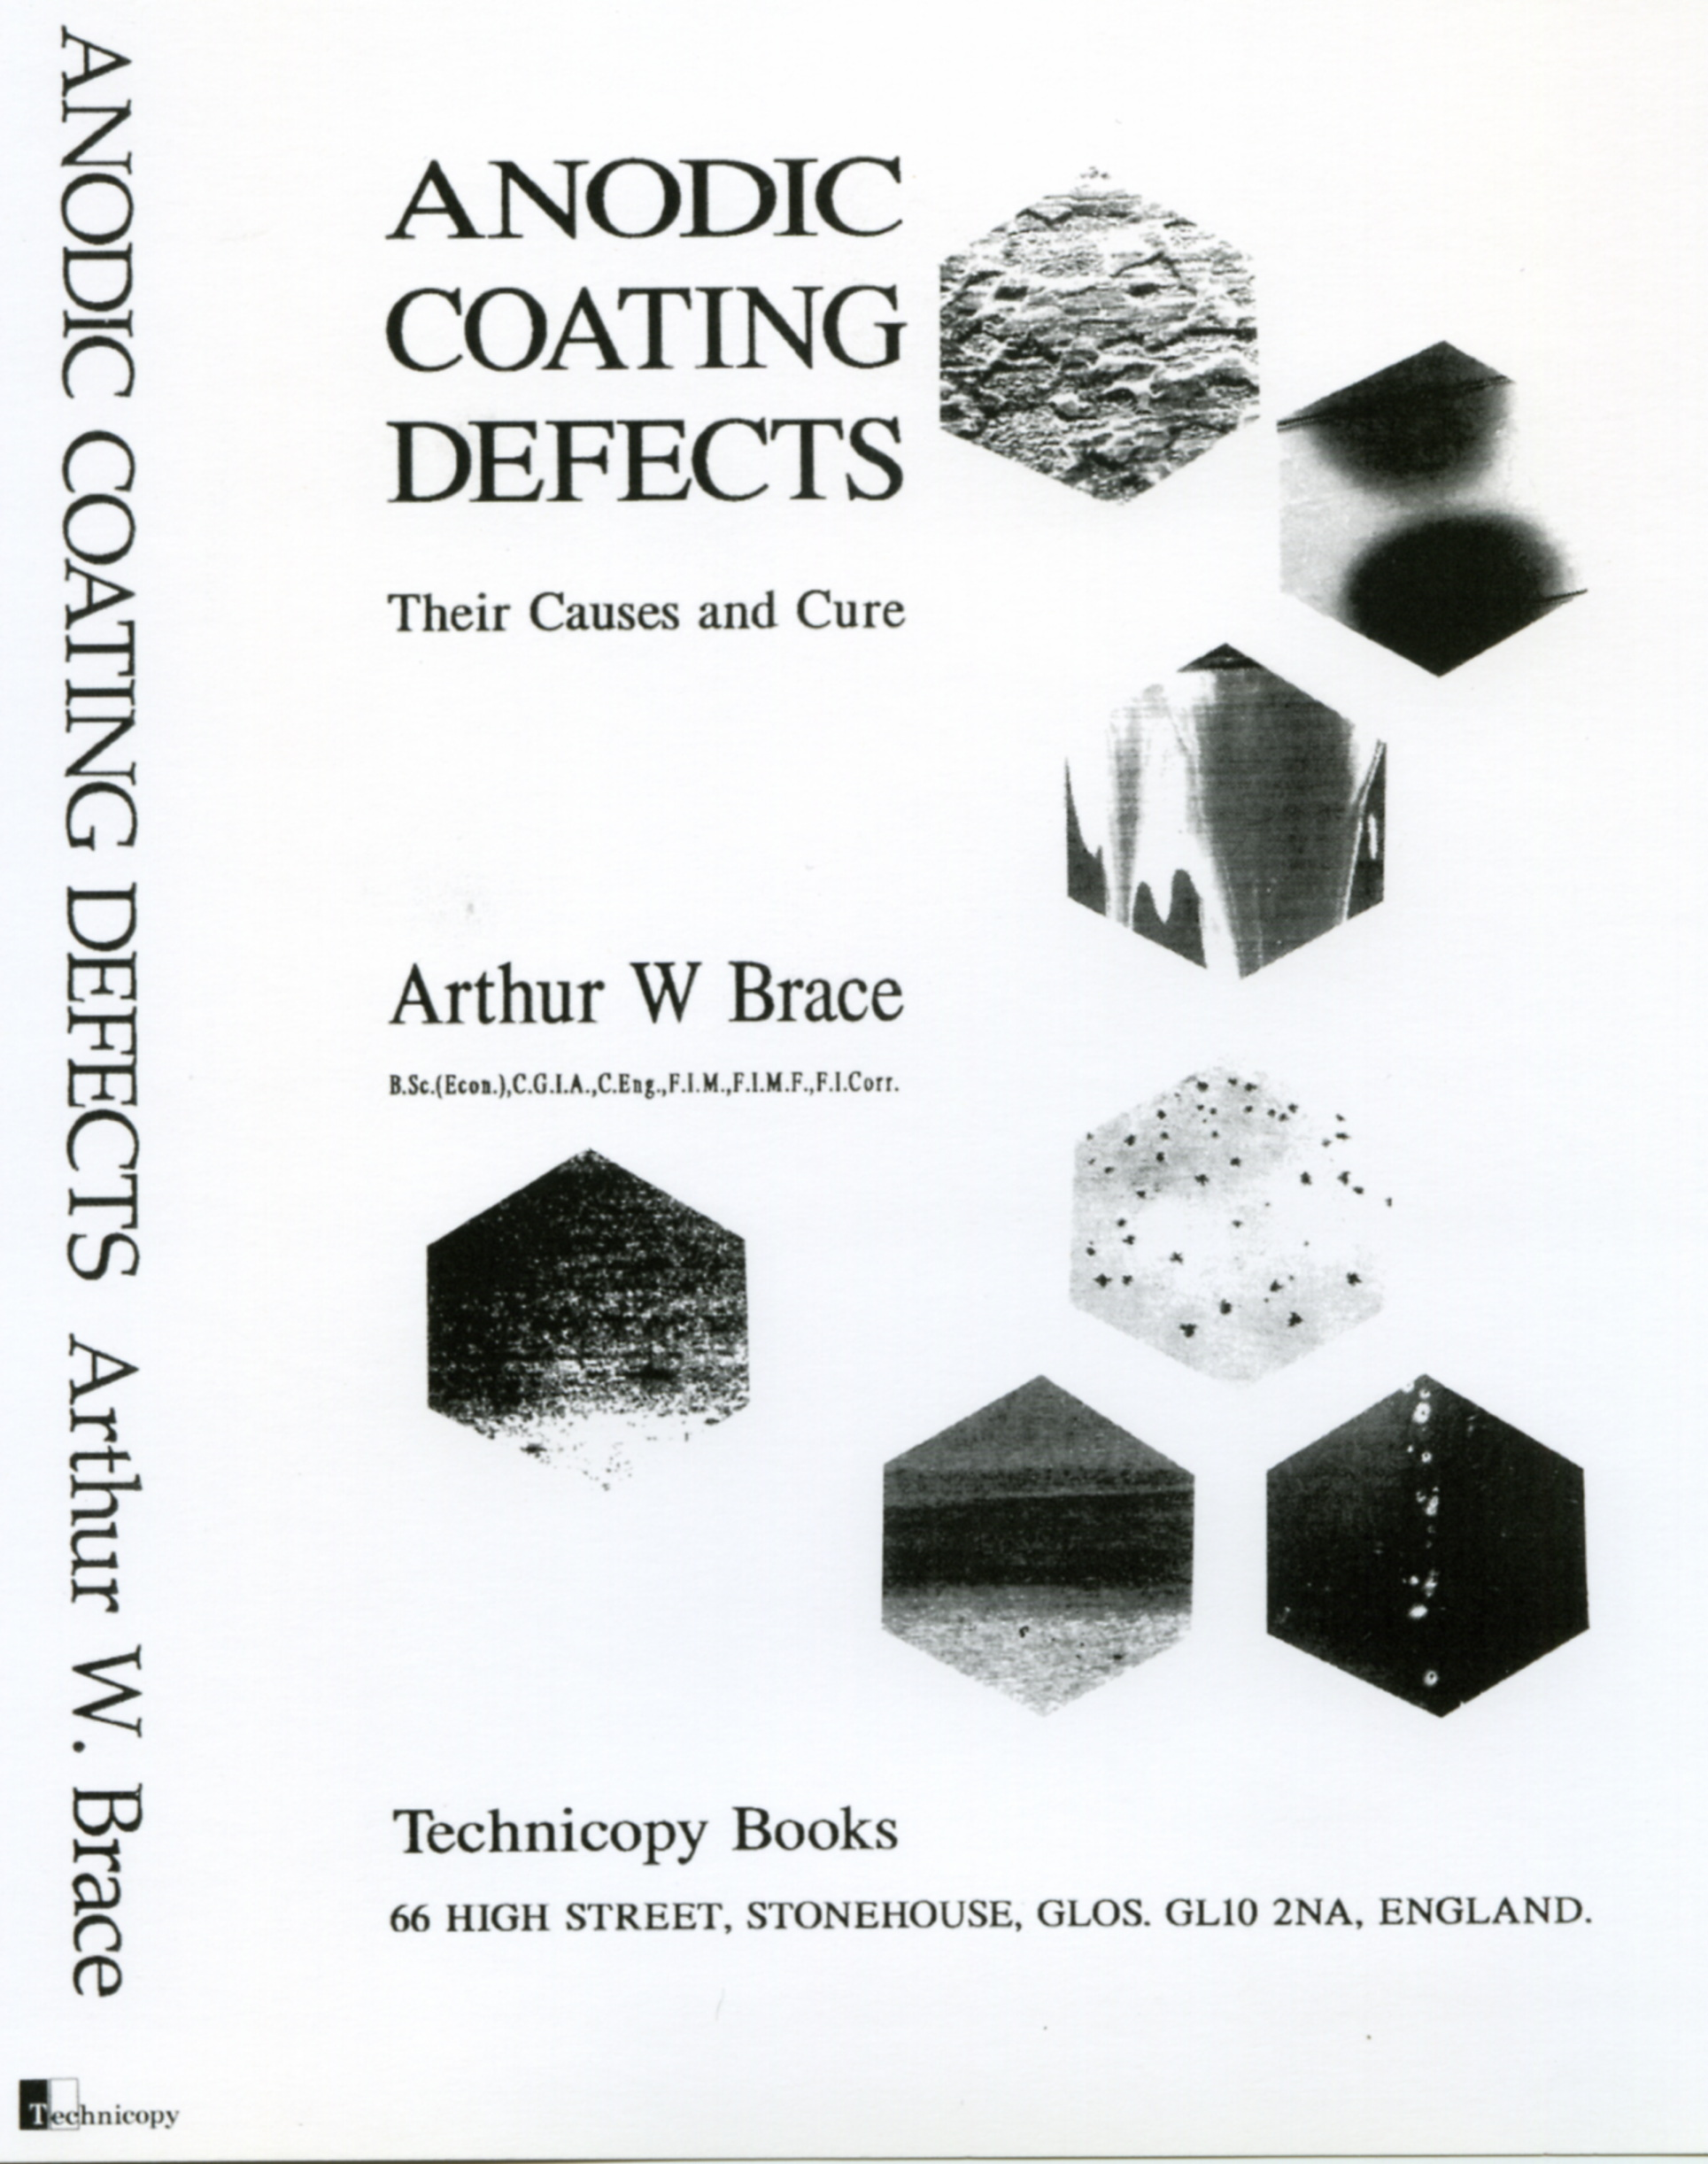 Anodic Coating Defects